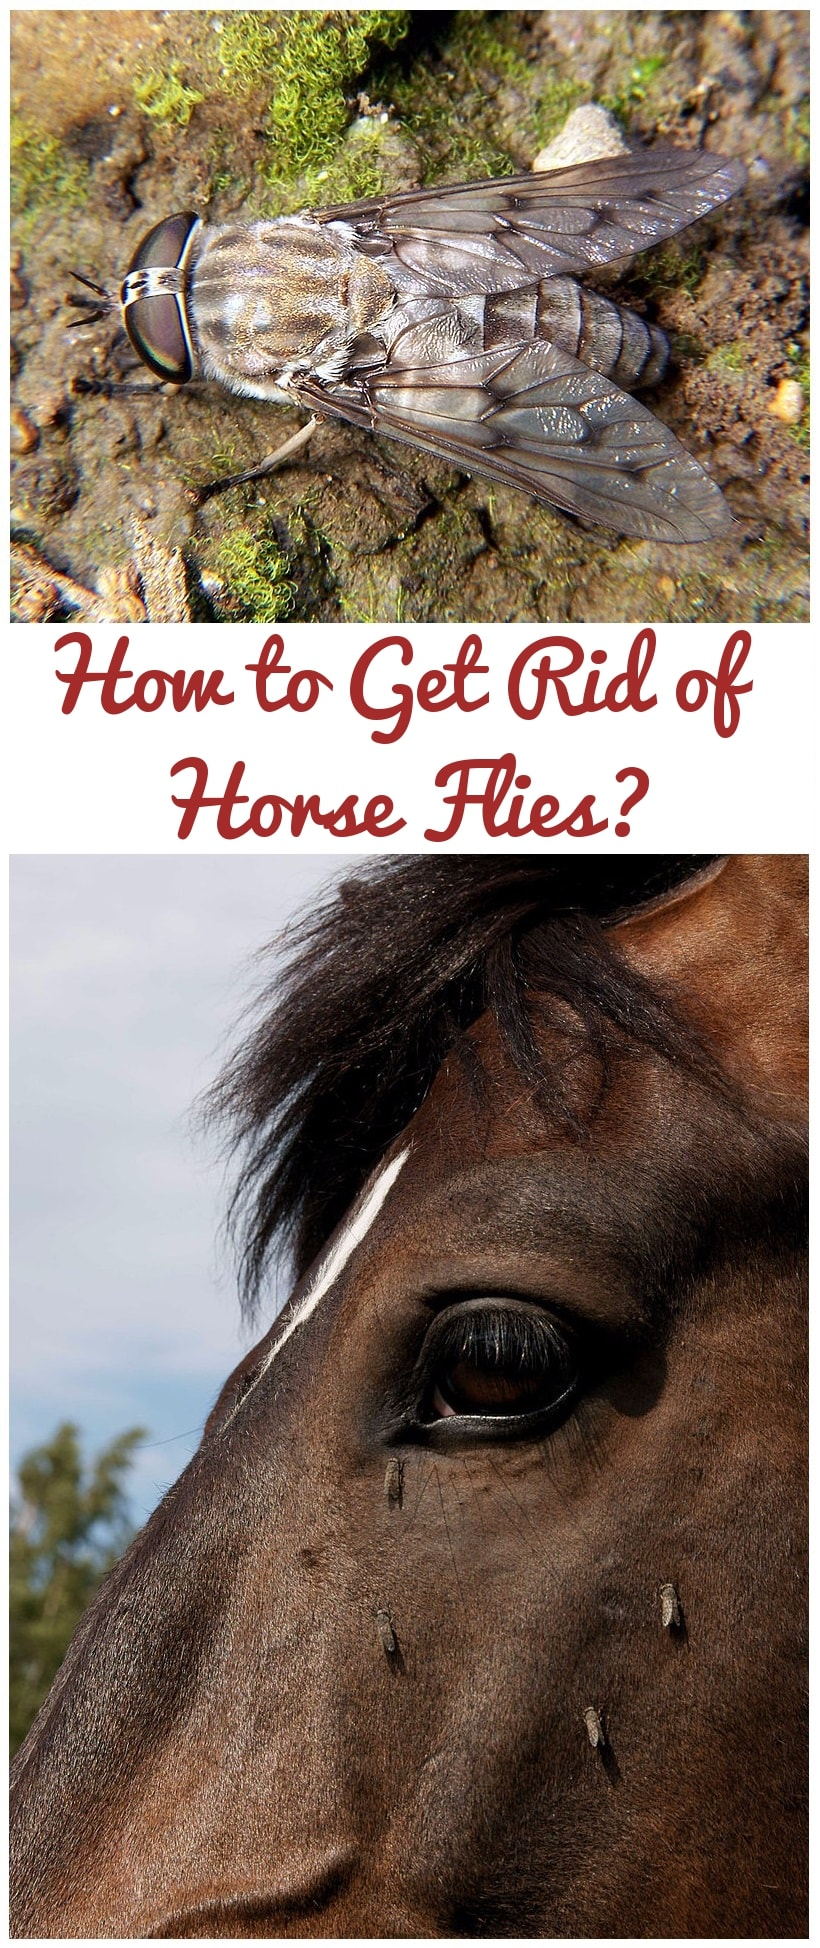 How to Get Rid of Horse Flies?